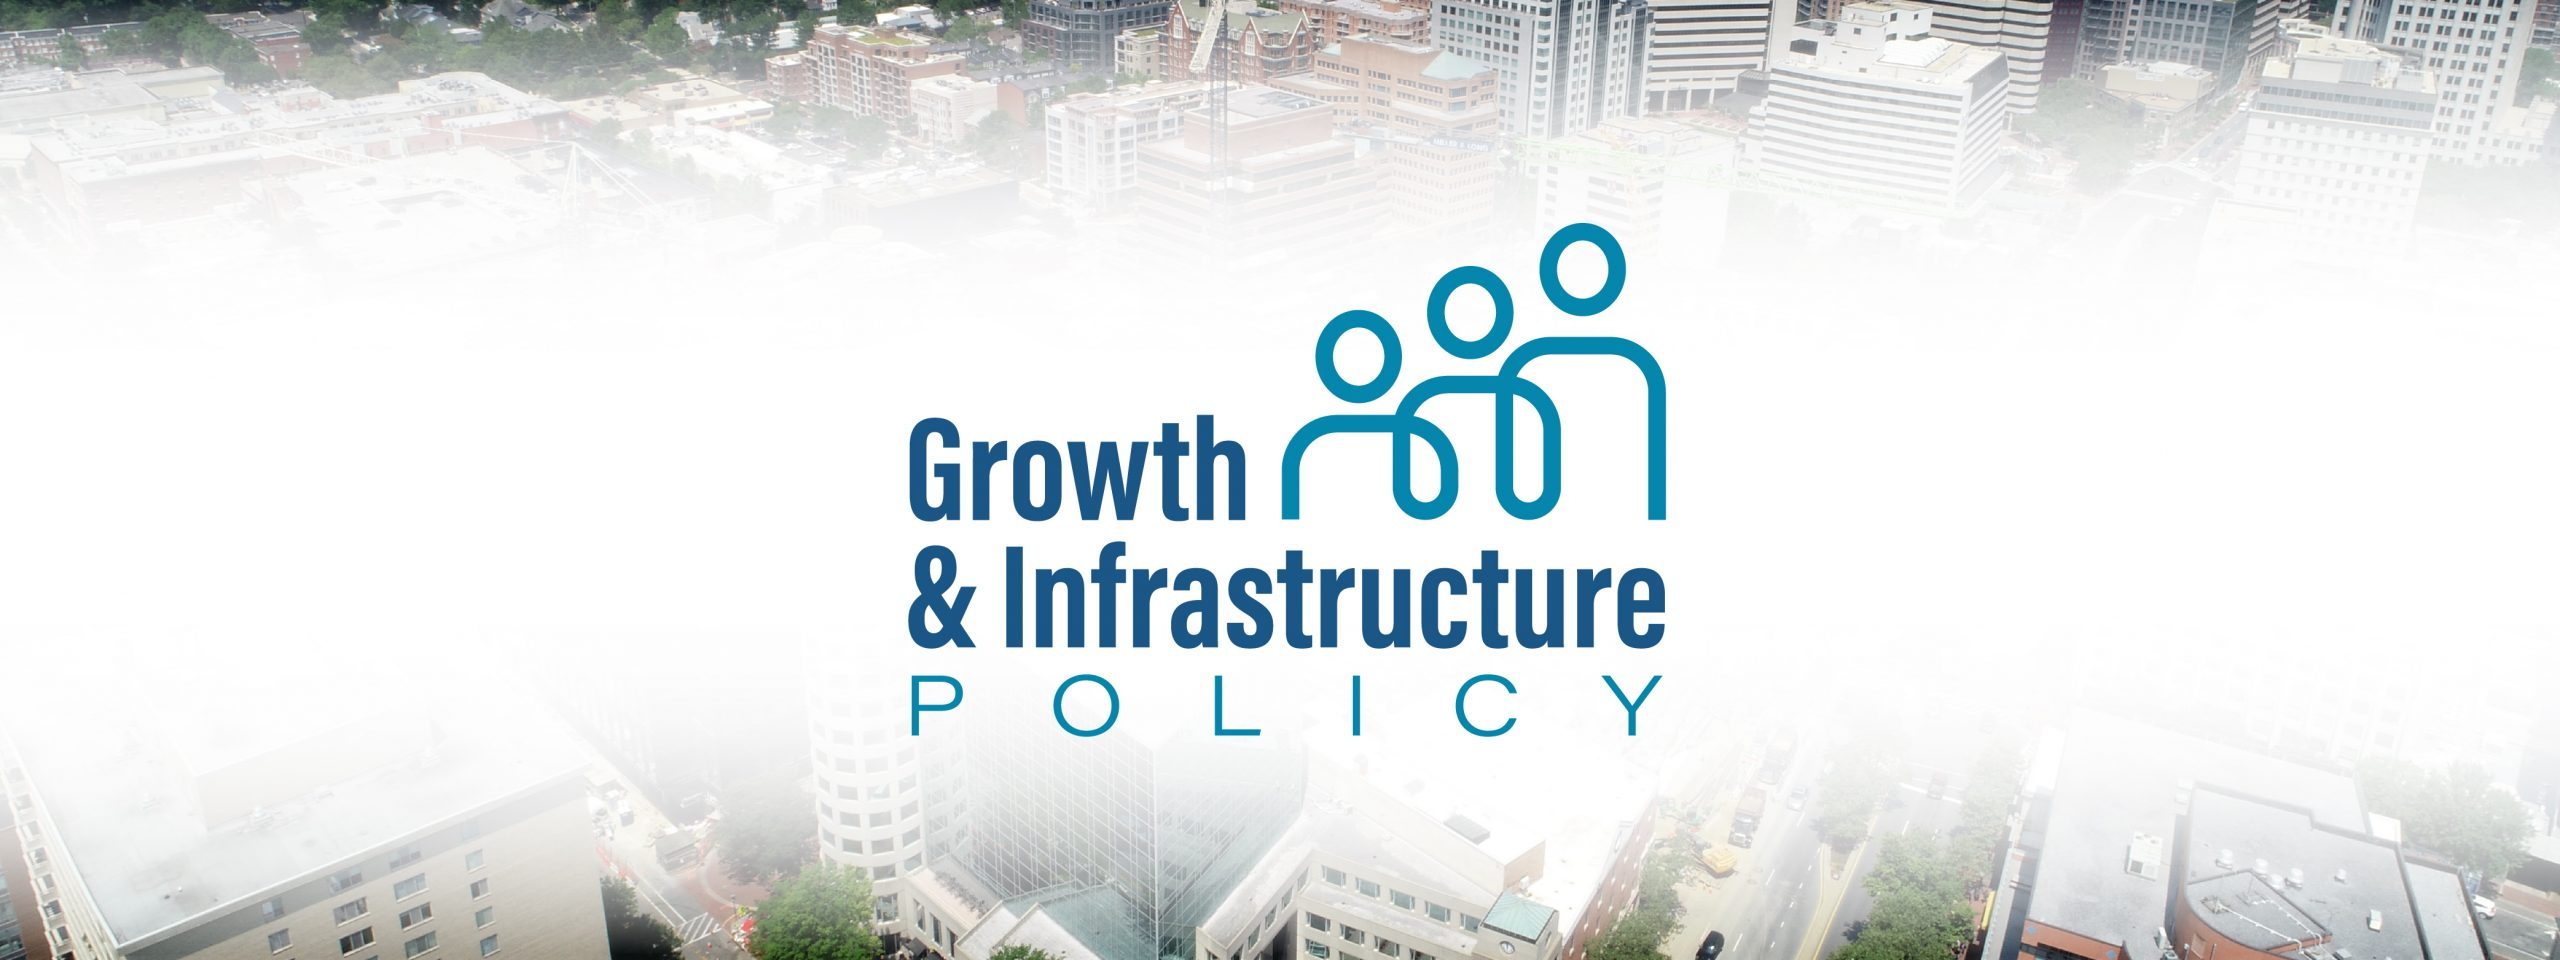 Grosth and Infrastructure Policy